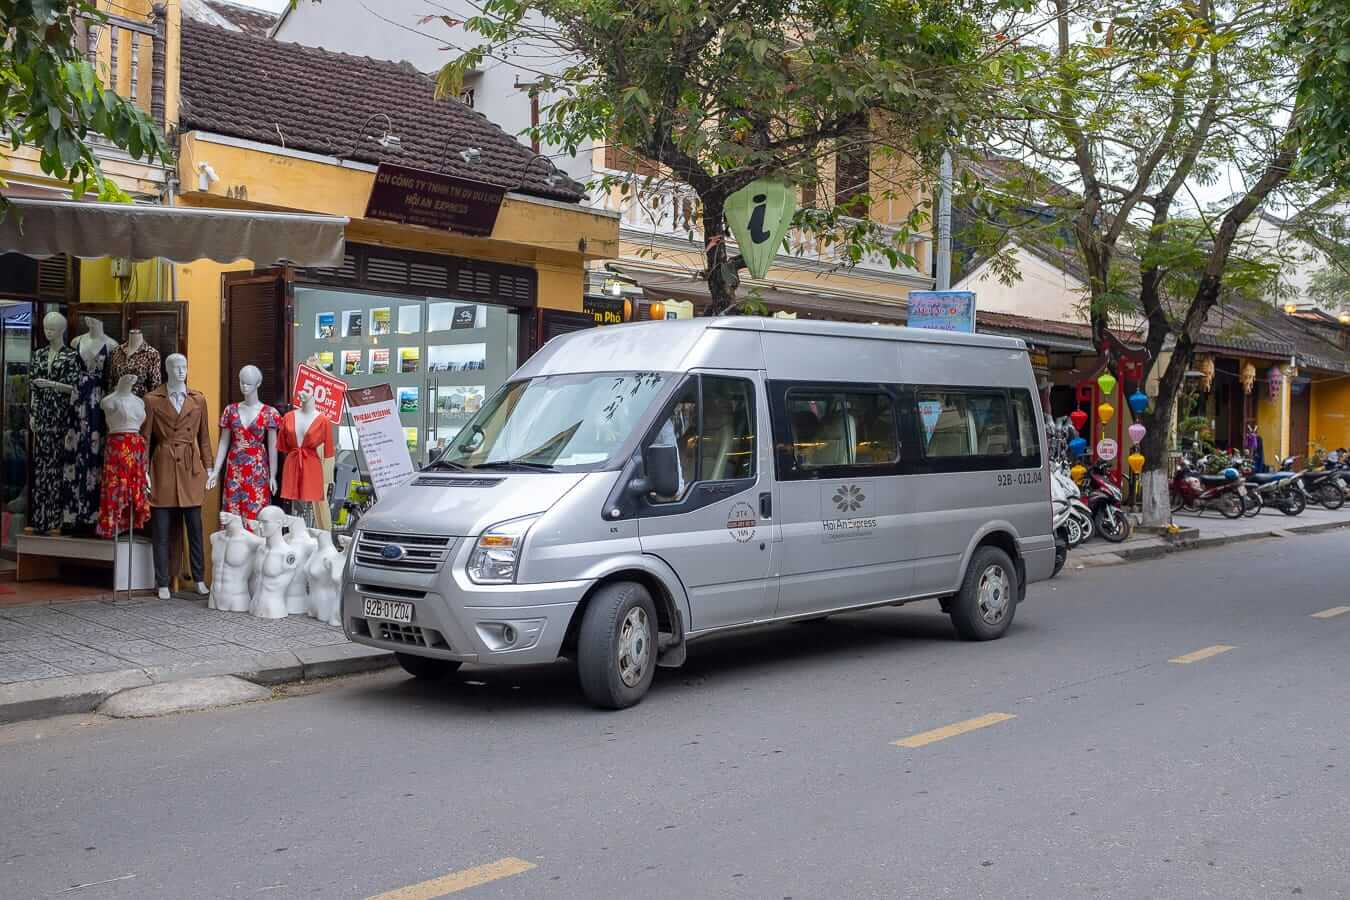 Hoi An Express mini bus: Hoi An bus station